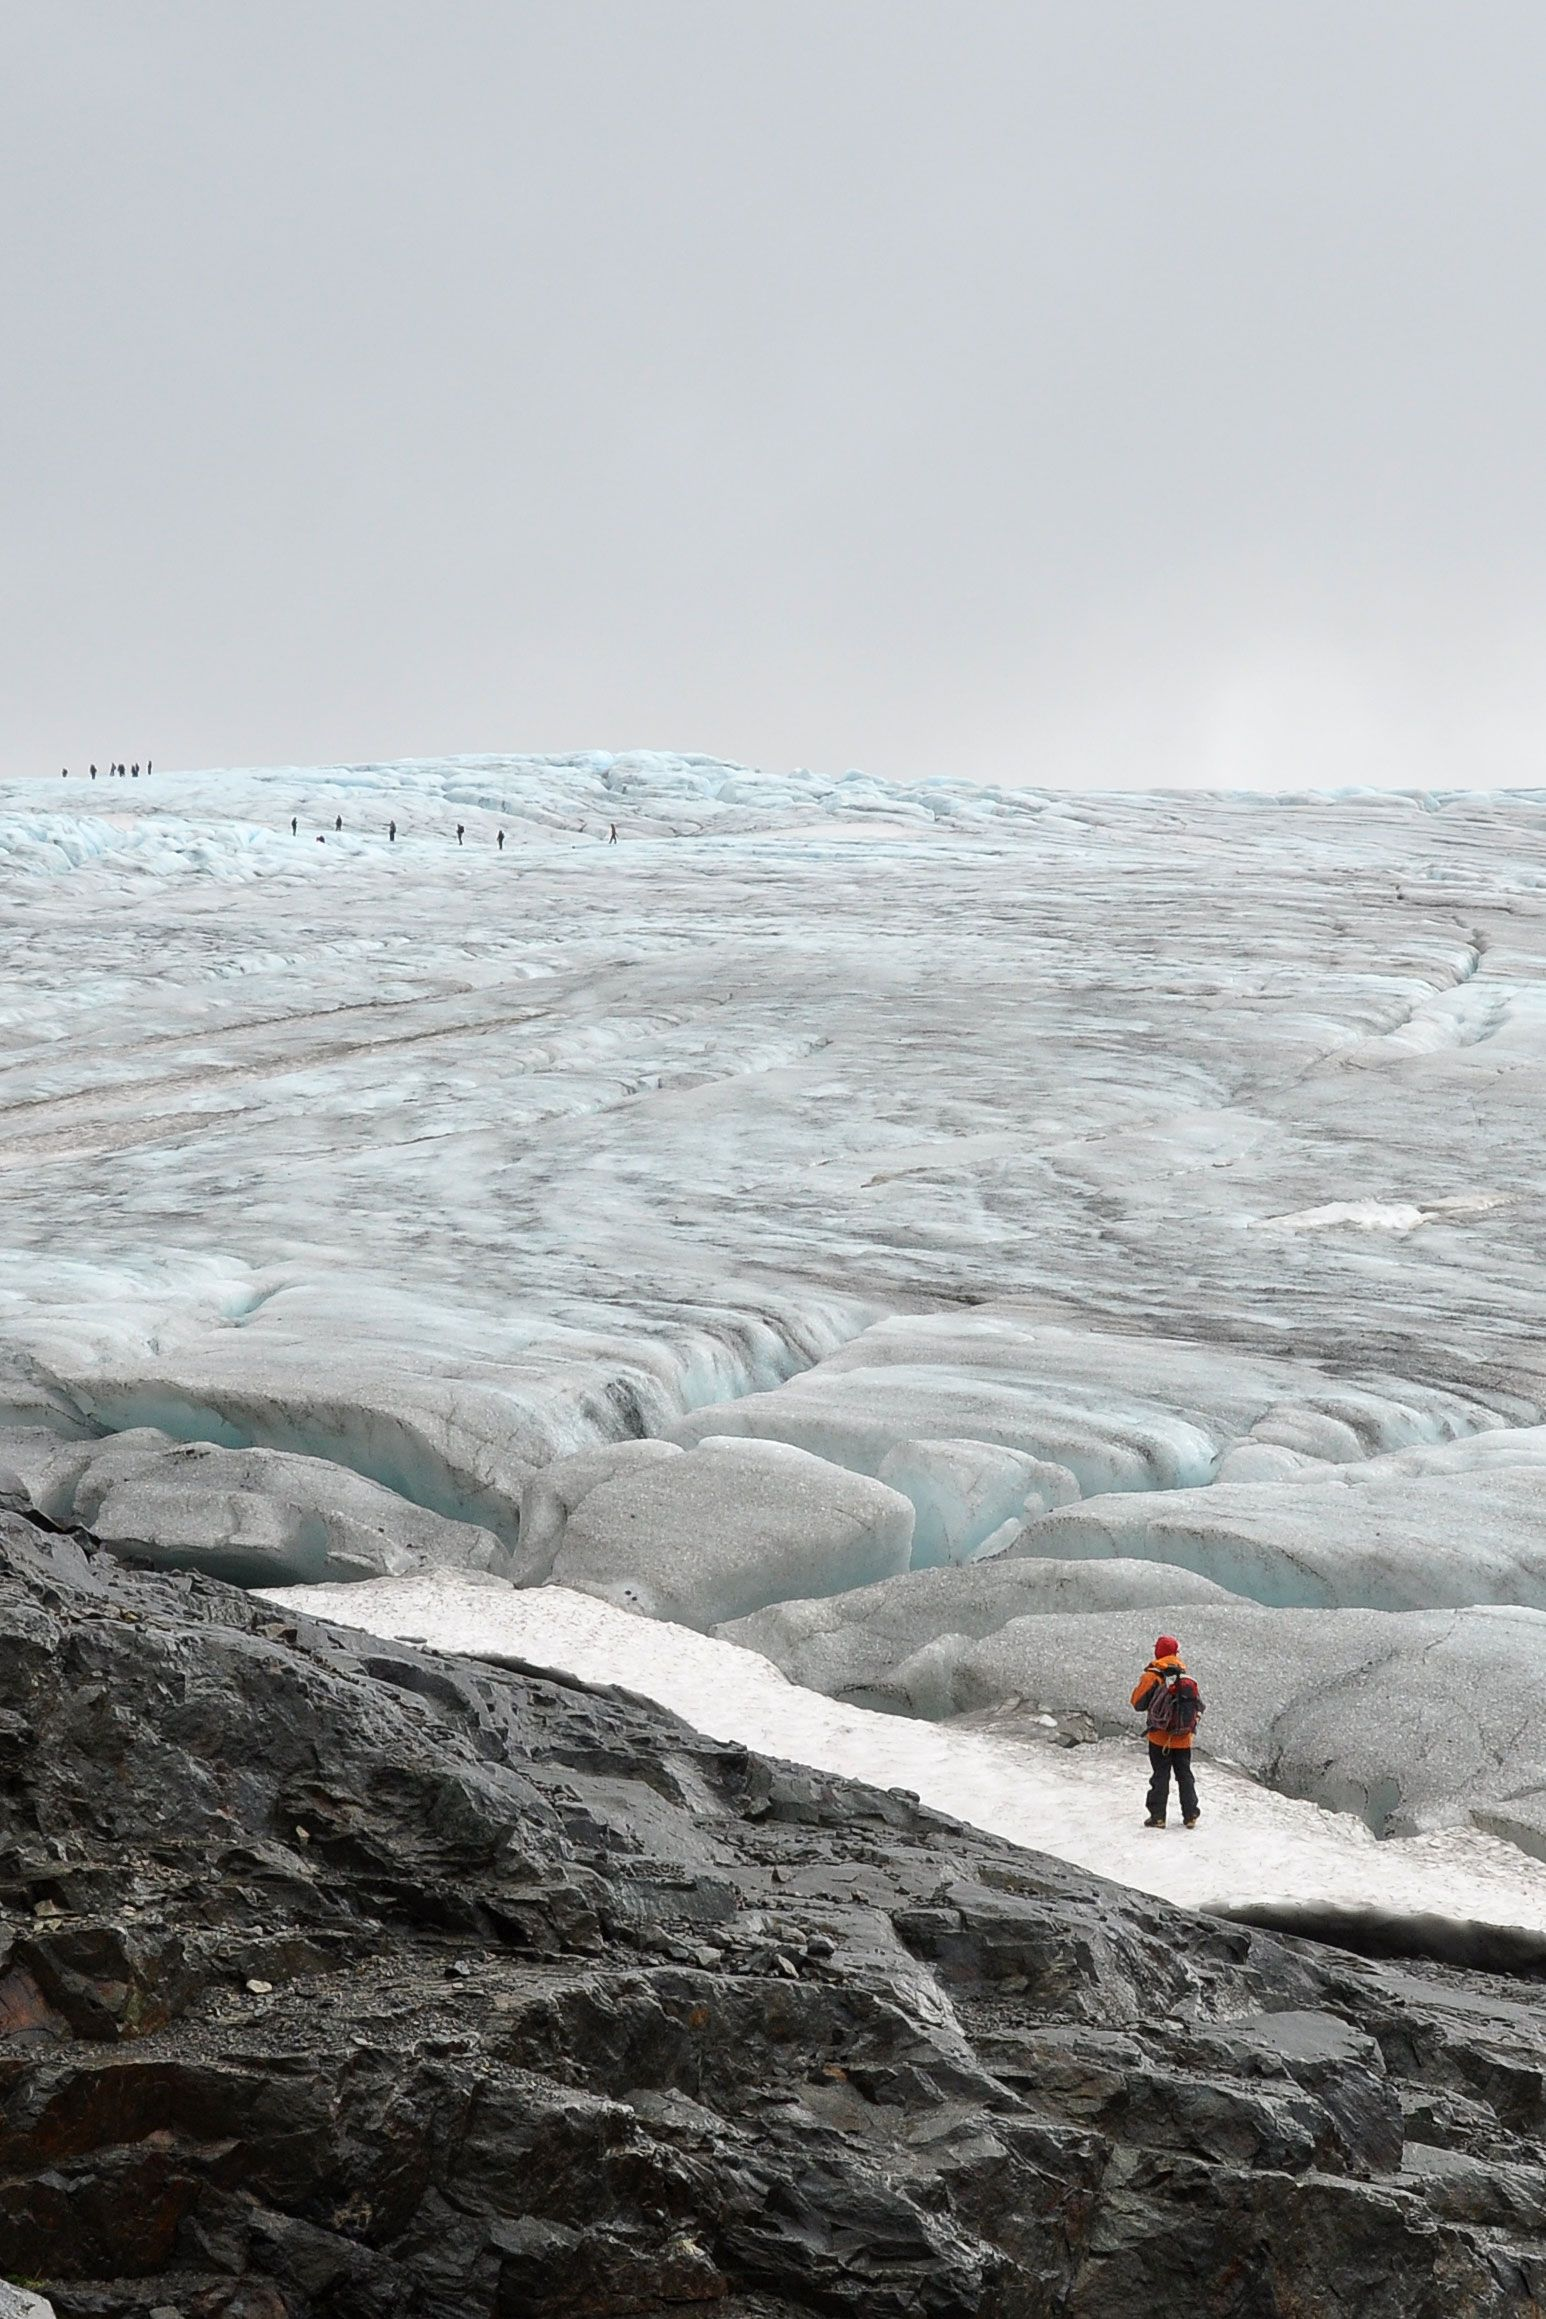 One clear rule: you never walk alone on a glacier.